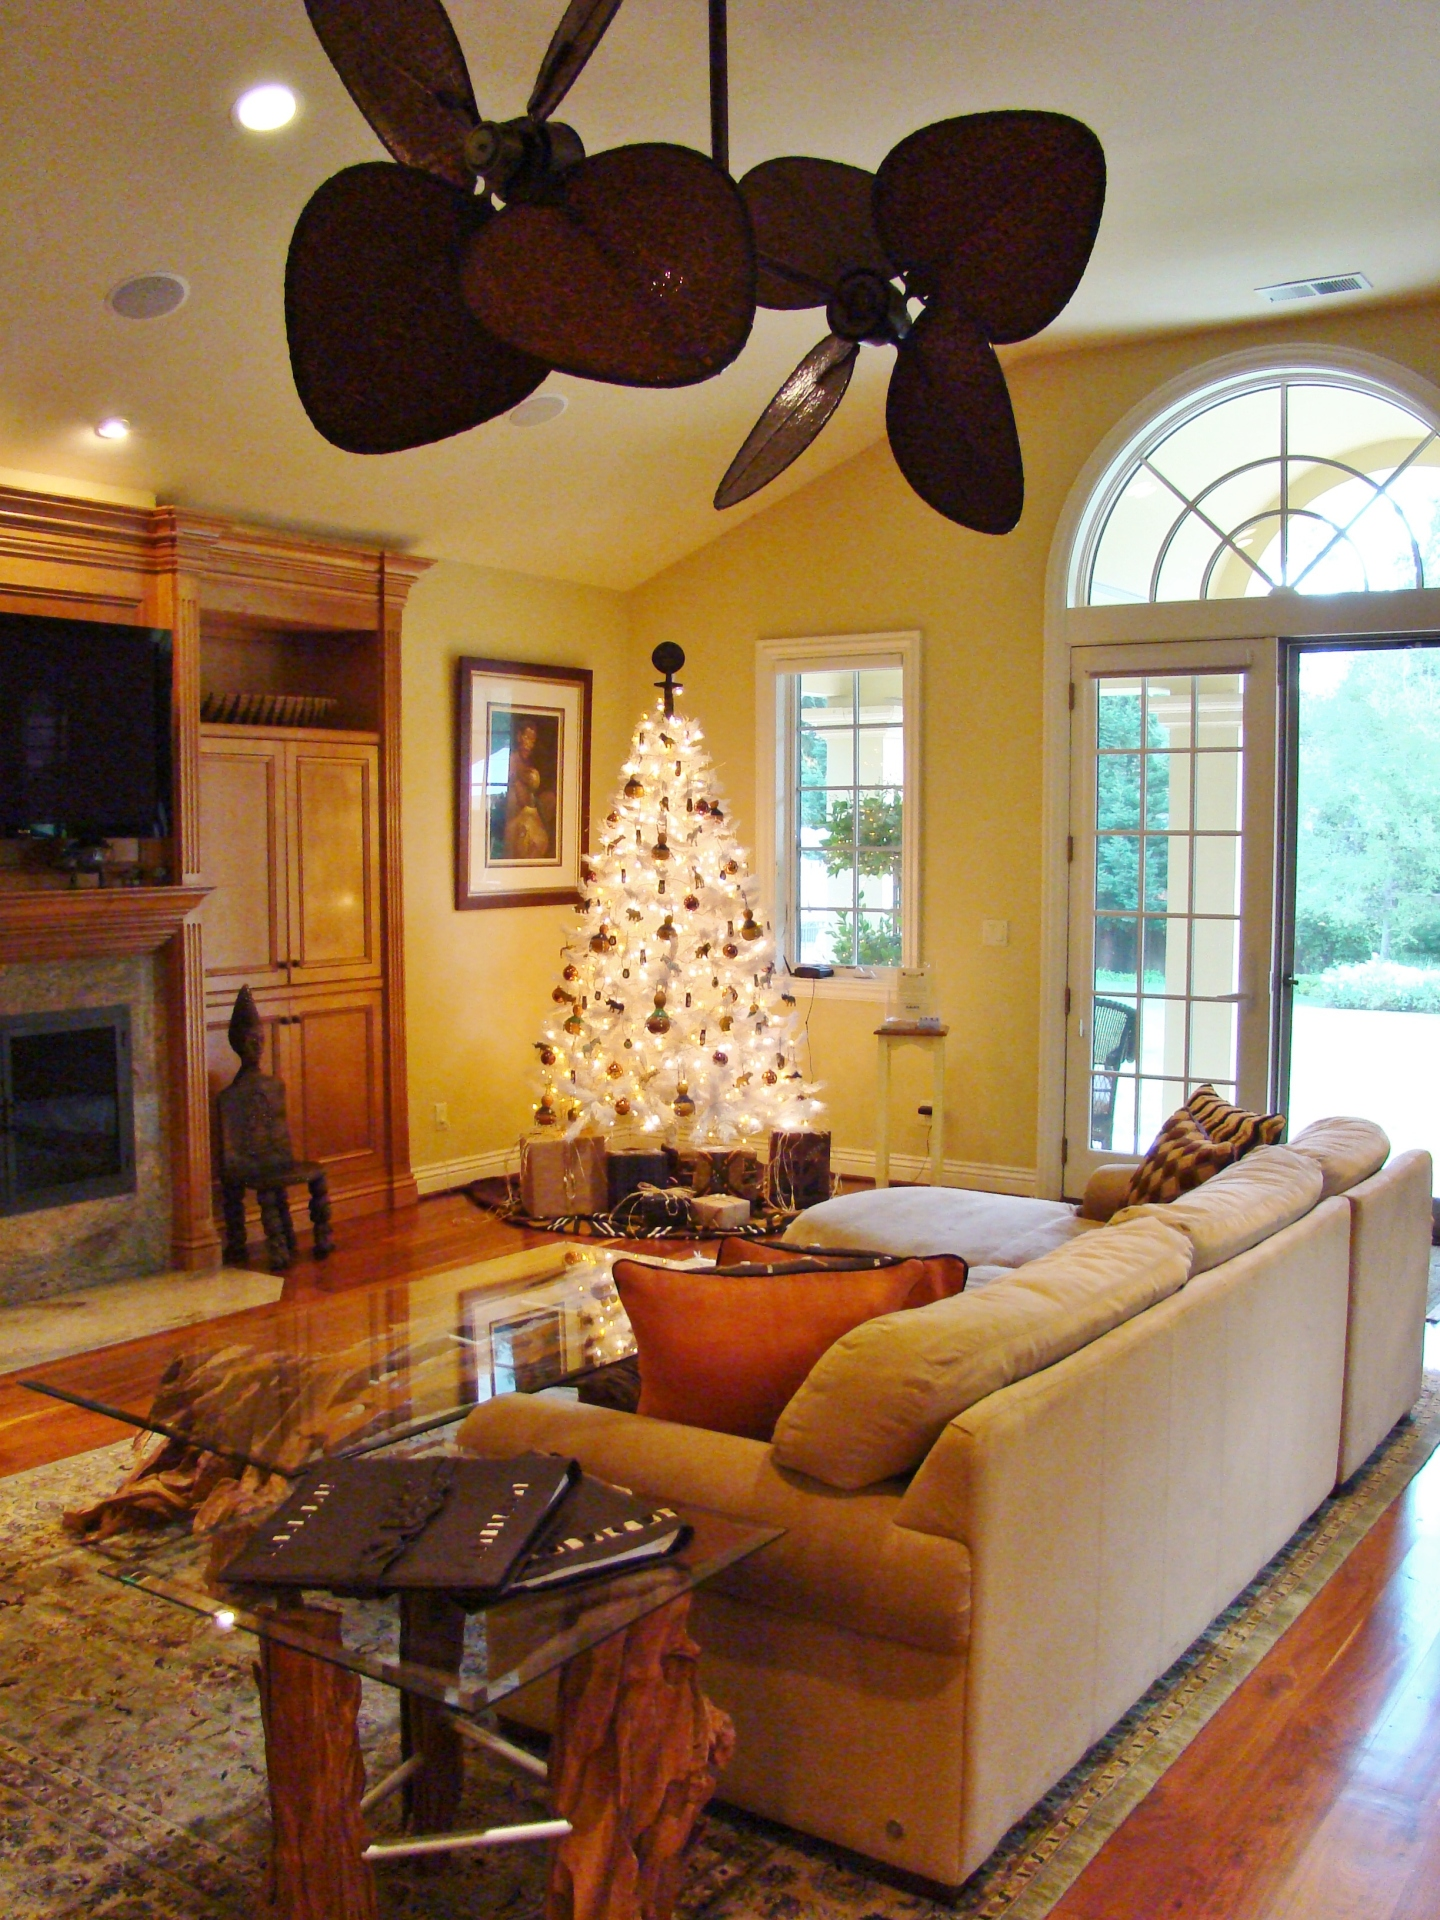 Fiorito Interior Design, interior design, Homes For The Holidays, African, holiday tree